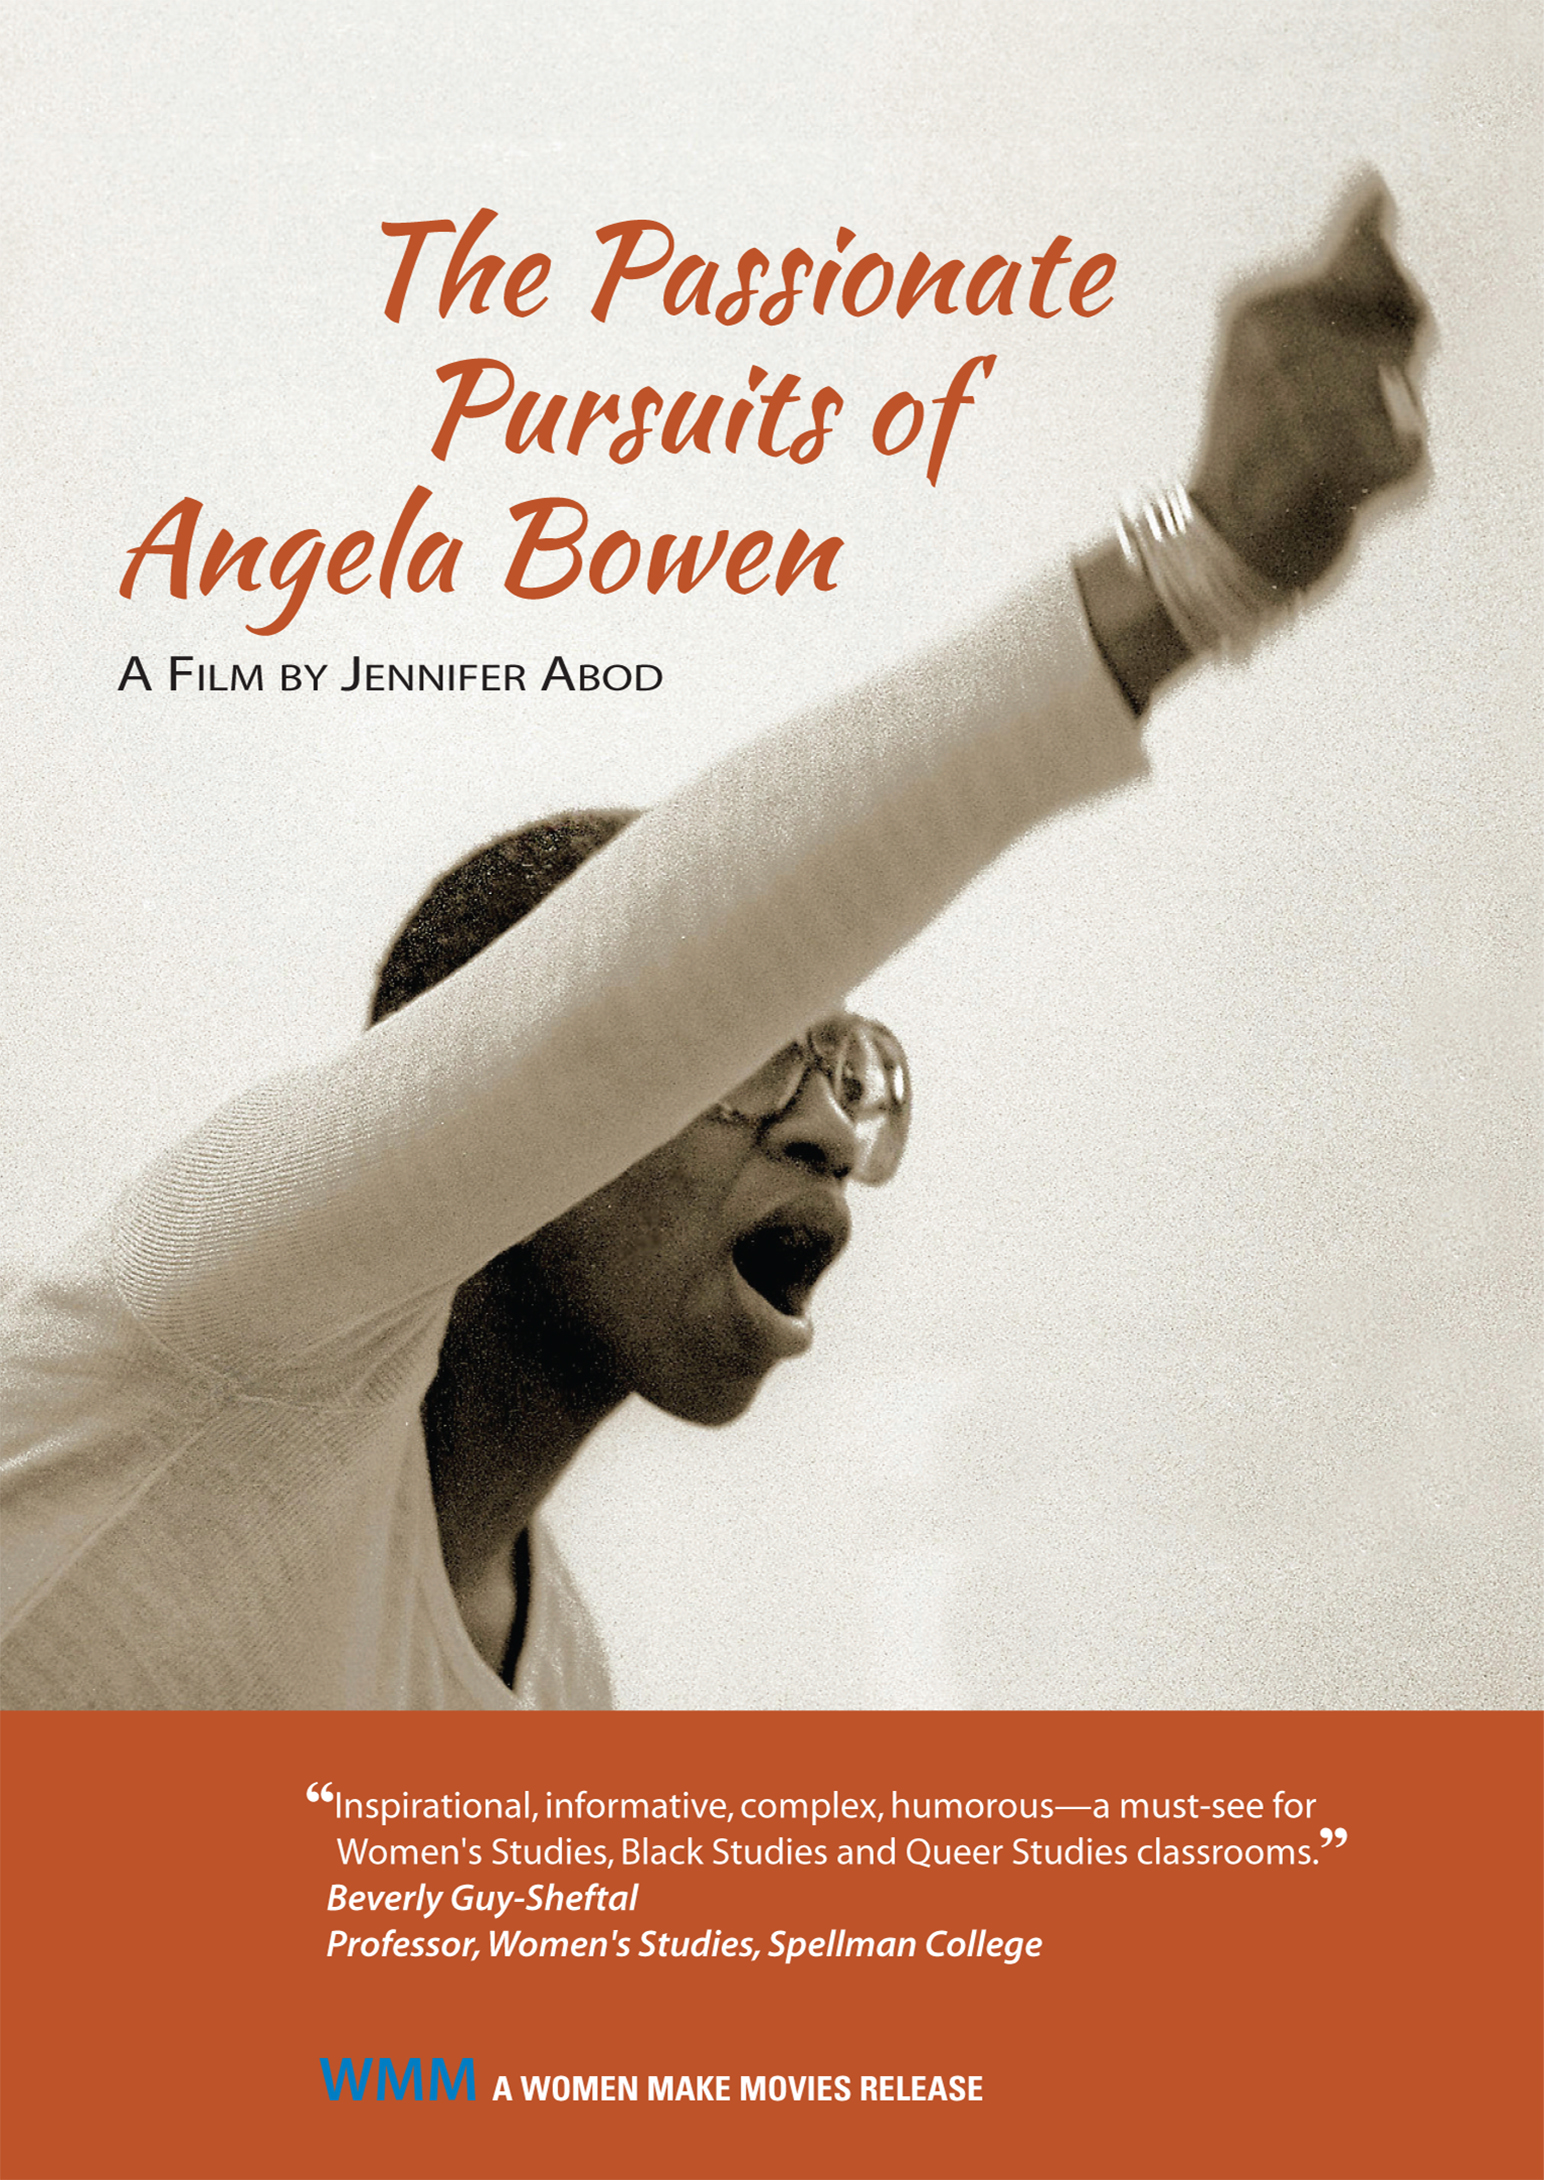 DVD The Passionate Pursuits of Angela Bowen